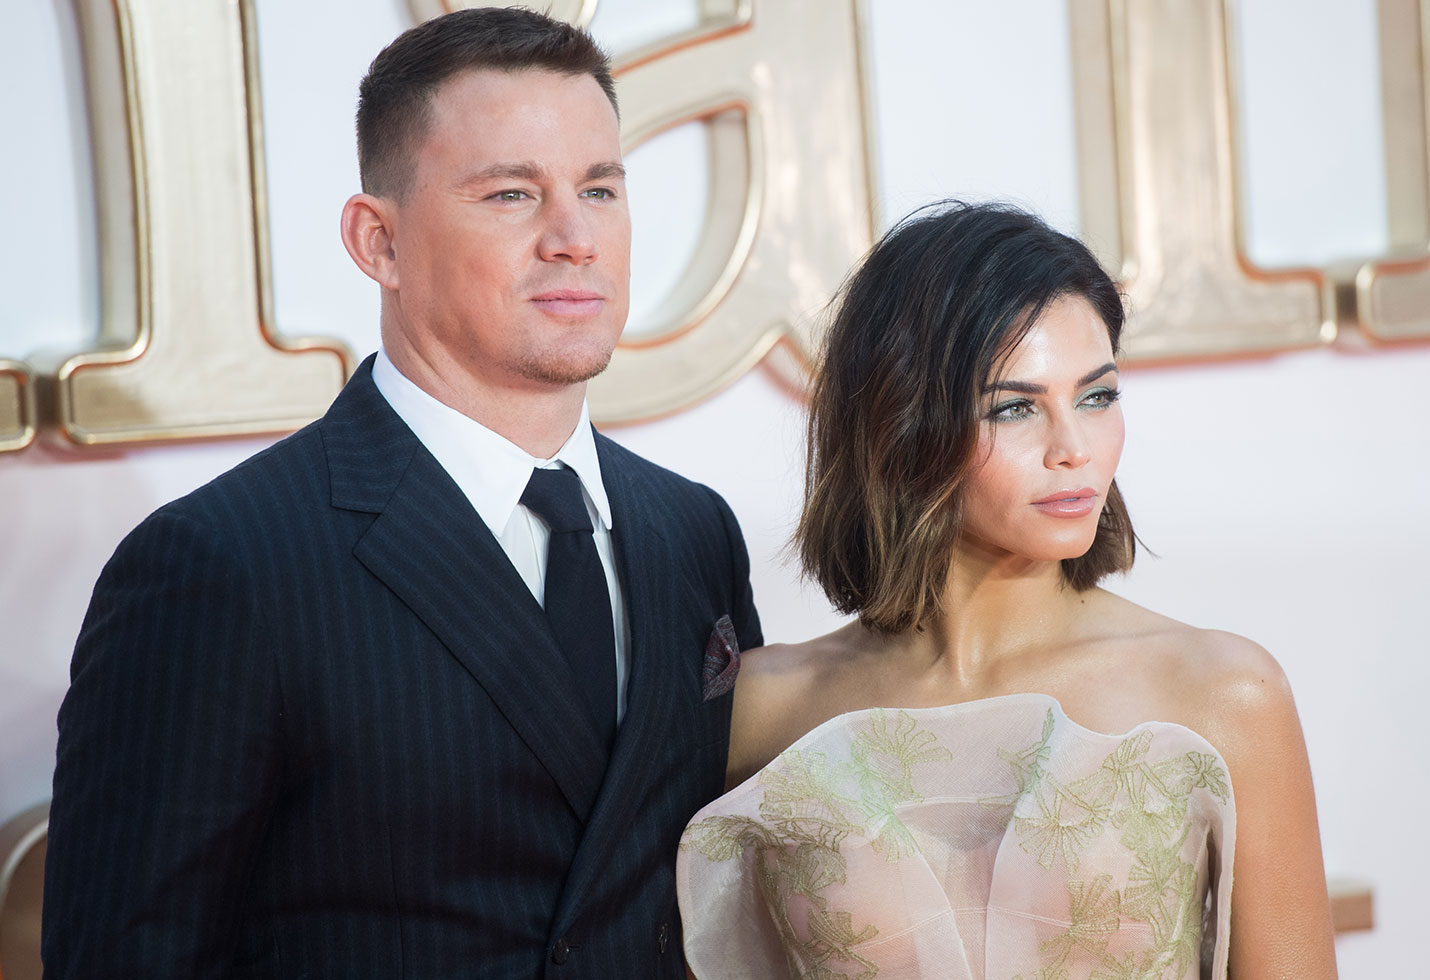 Find jenna dewan reacts news channing tatum used stripper